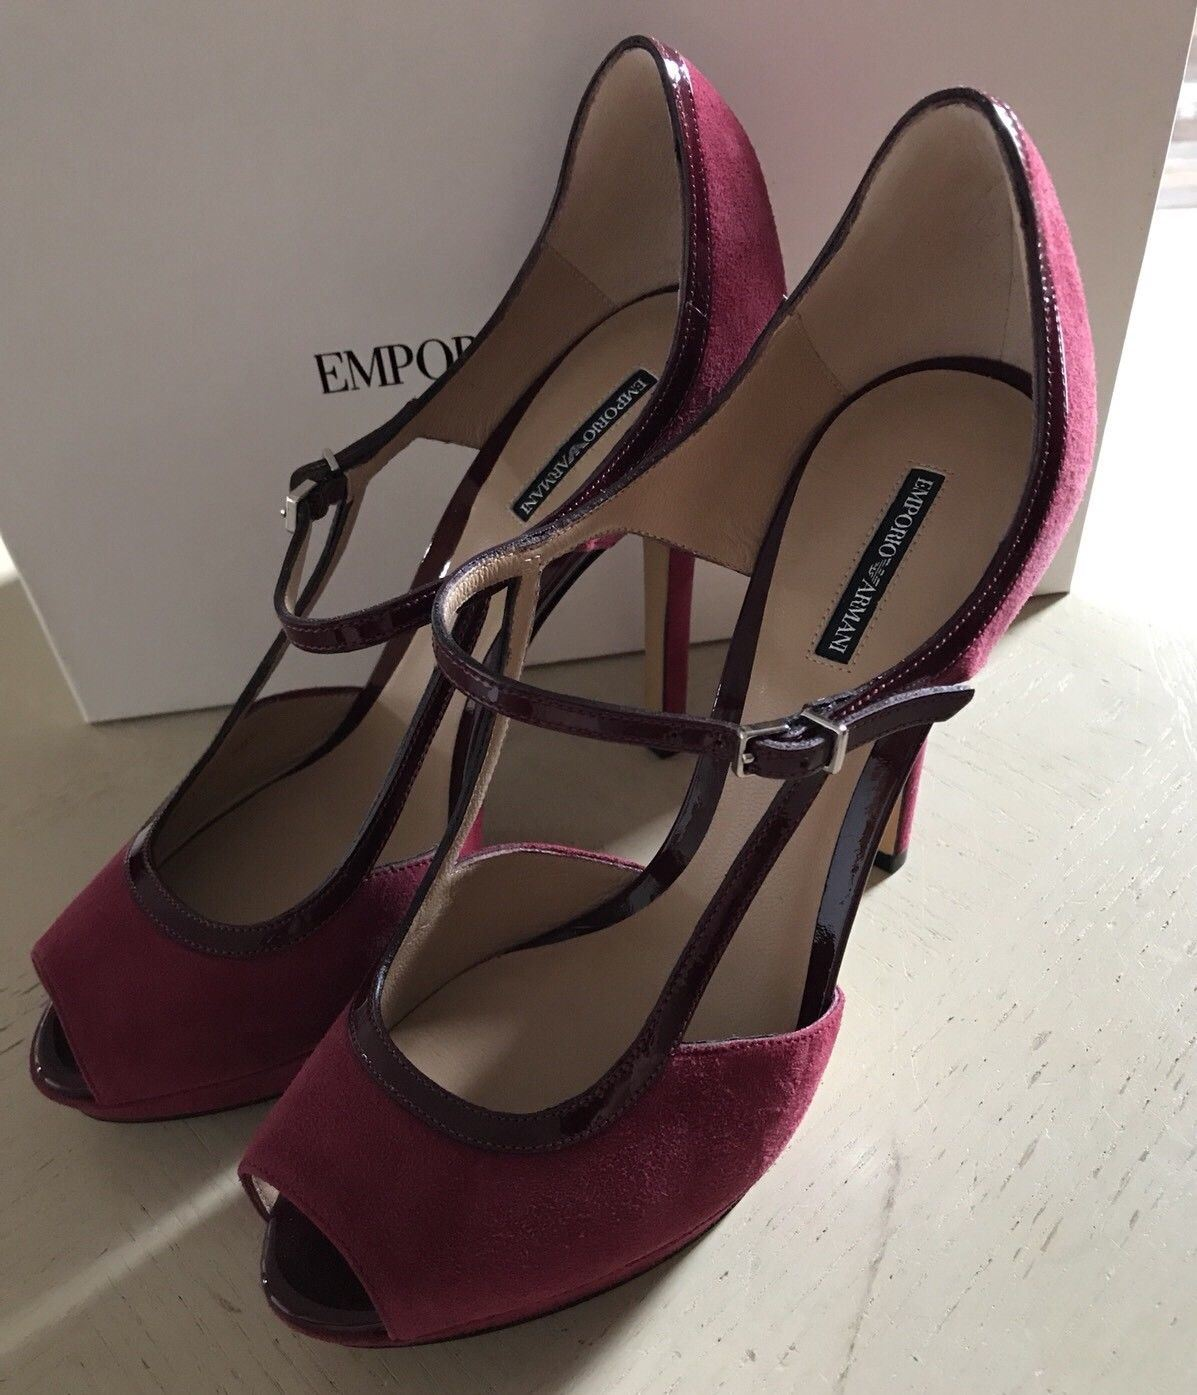 NIB $695 Emporio Armani Women's Sandal Shoes Red/Burgundy 6 US ( 36 Eu ) X3G130 - BAYSUPERSTORE